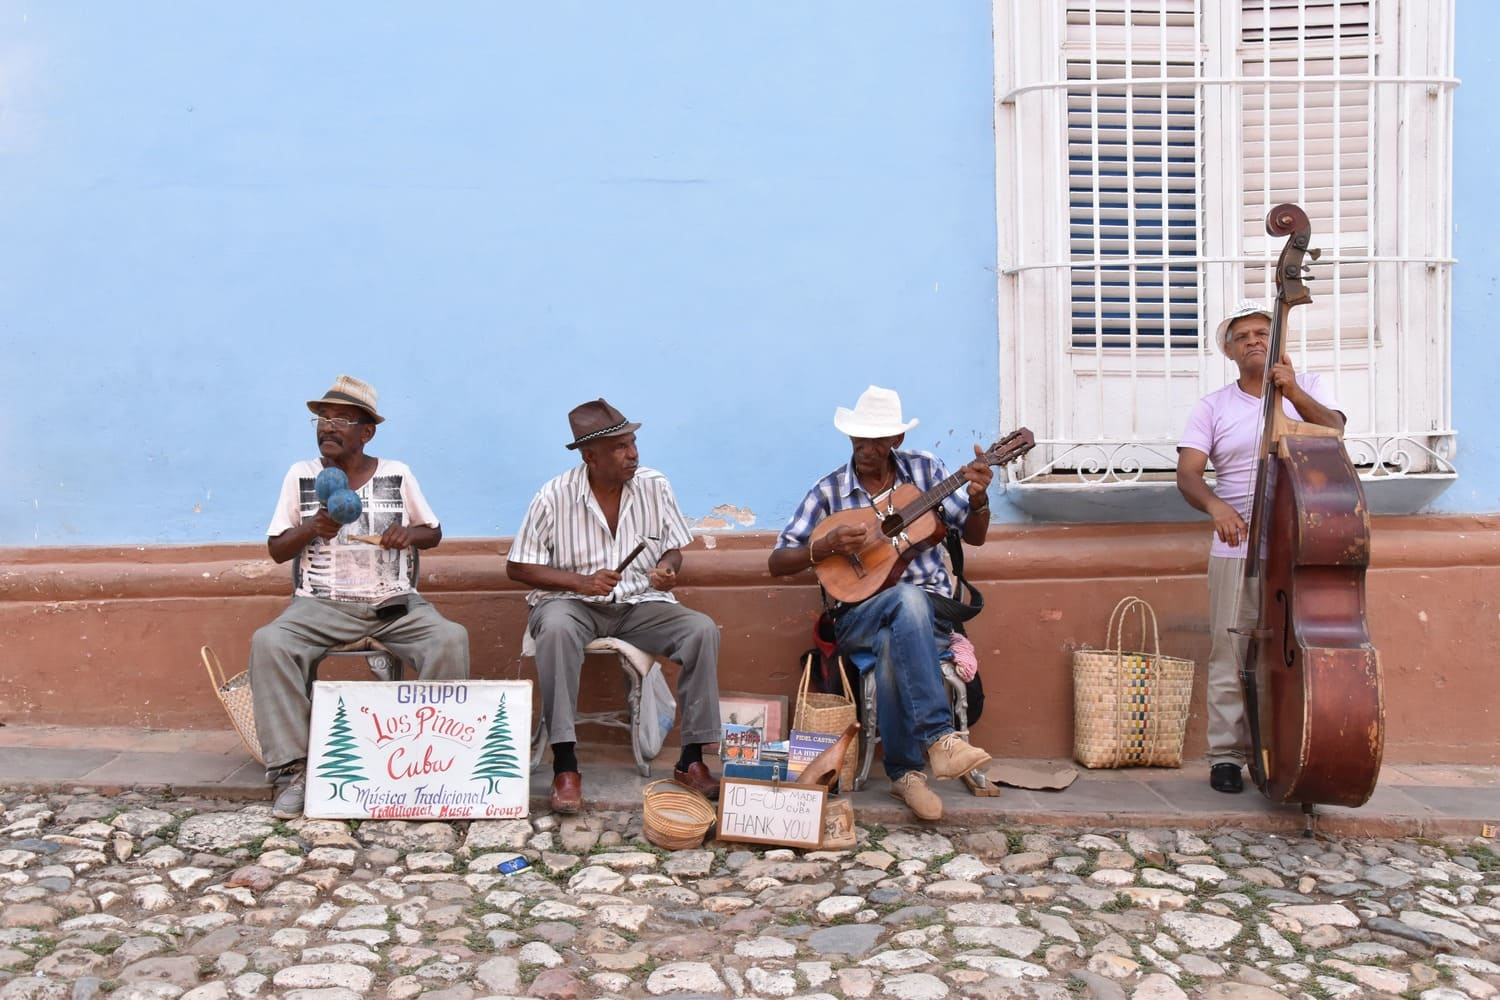 4 men are playing music in the streets of Trinidad